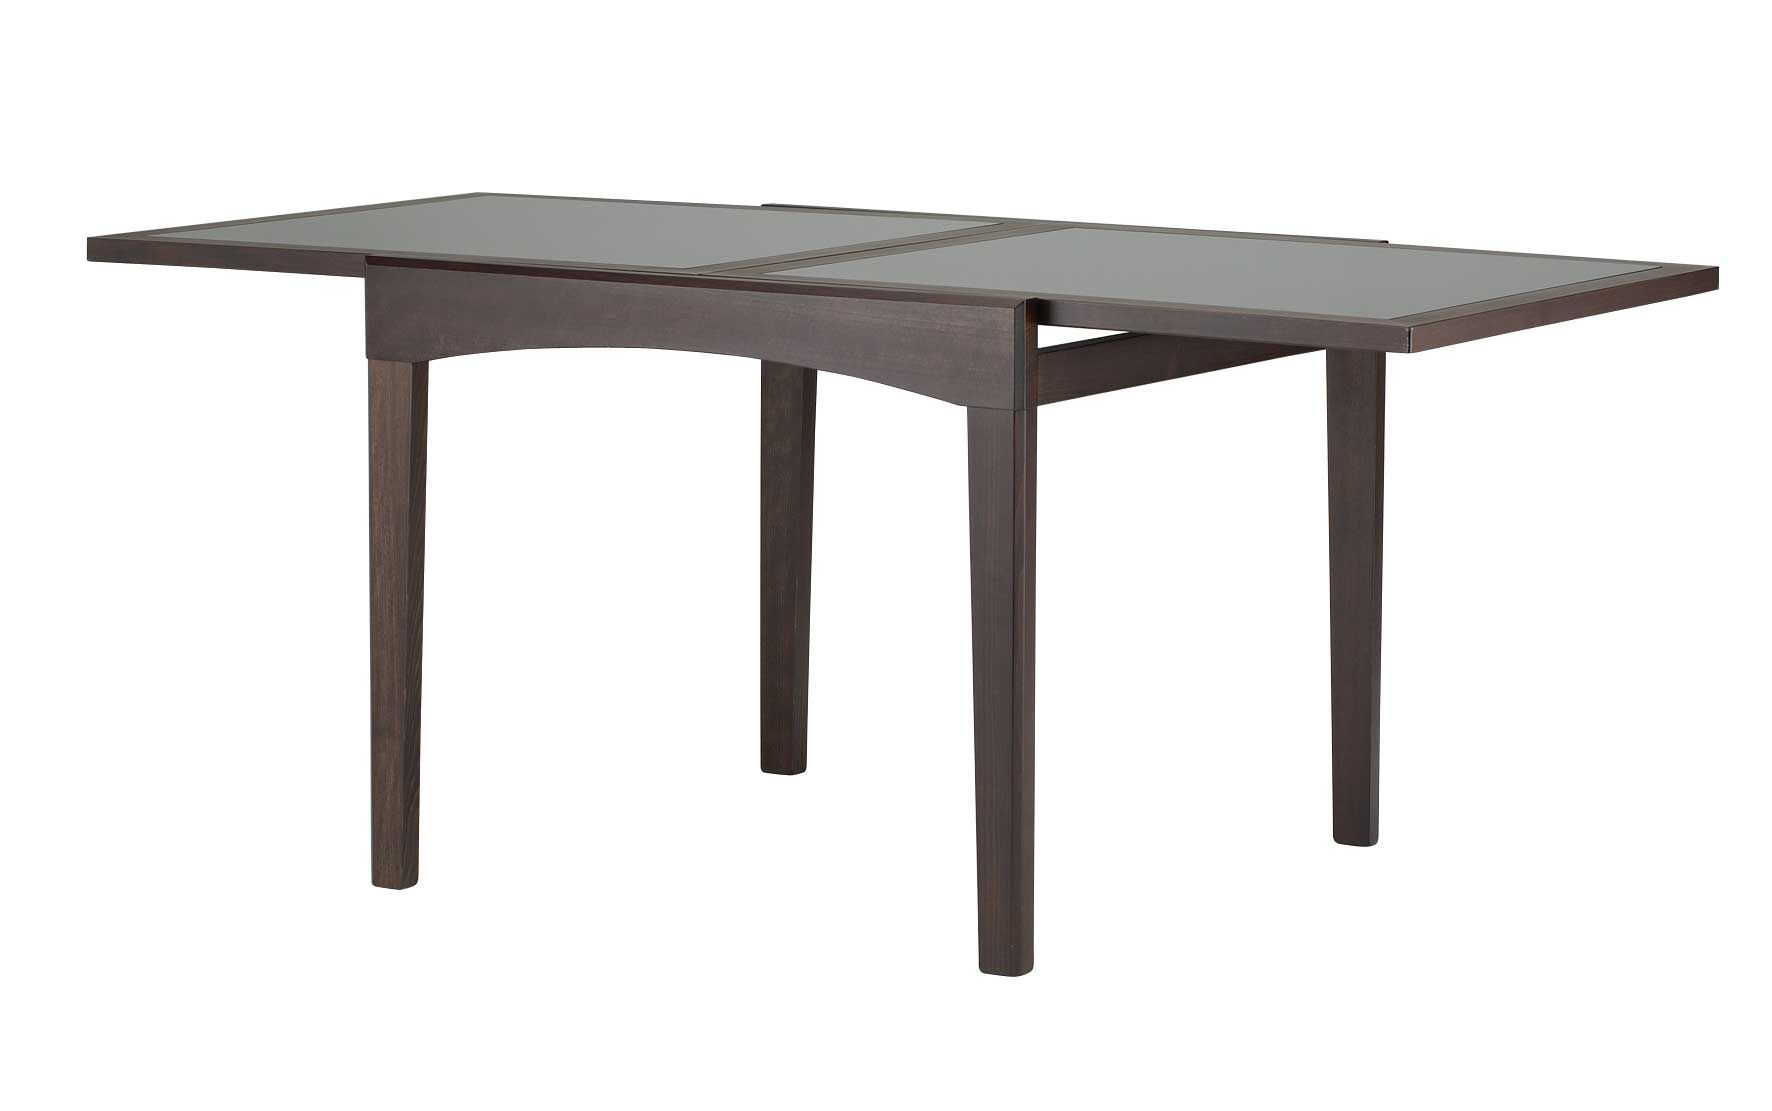 glass extending dining table : I1064859665120080626 from www.comparestoreprices.co.uk size 1772 x 1111 jpeg 41kB